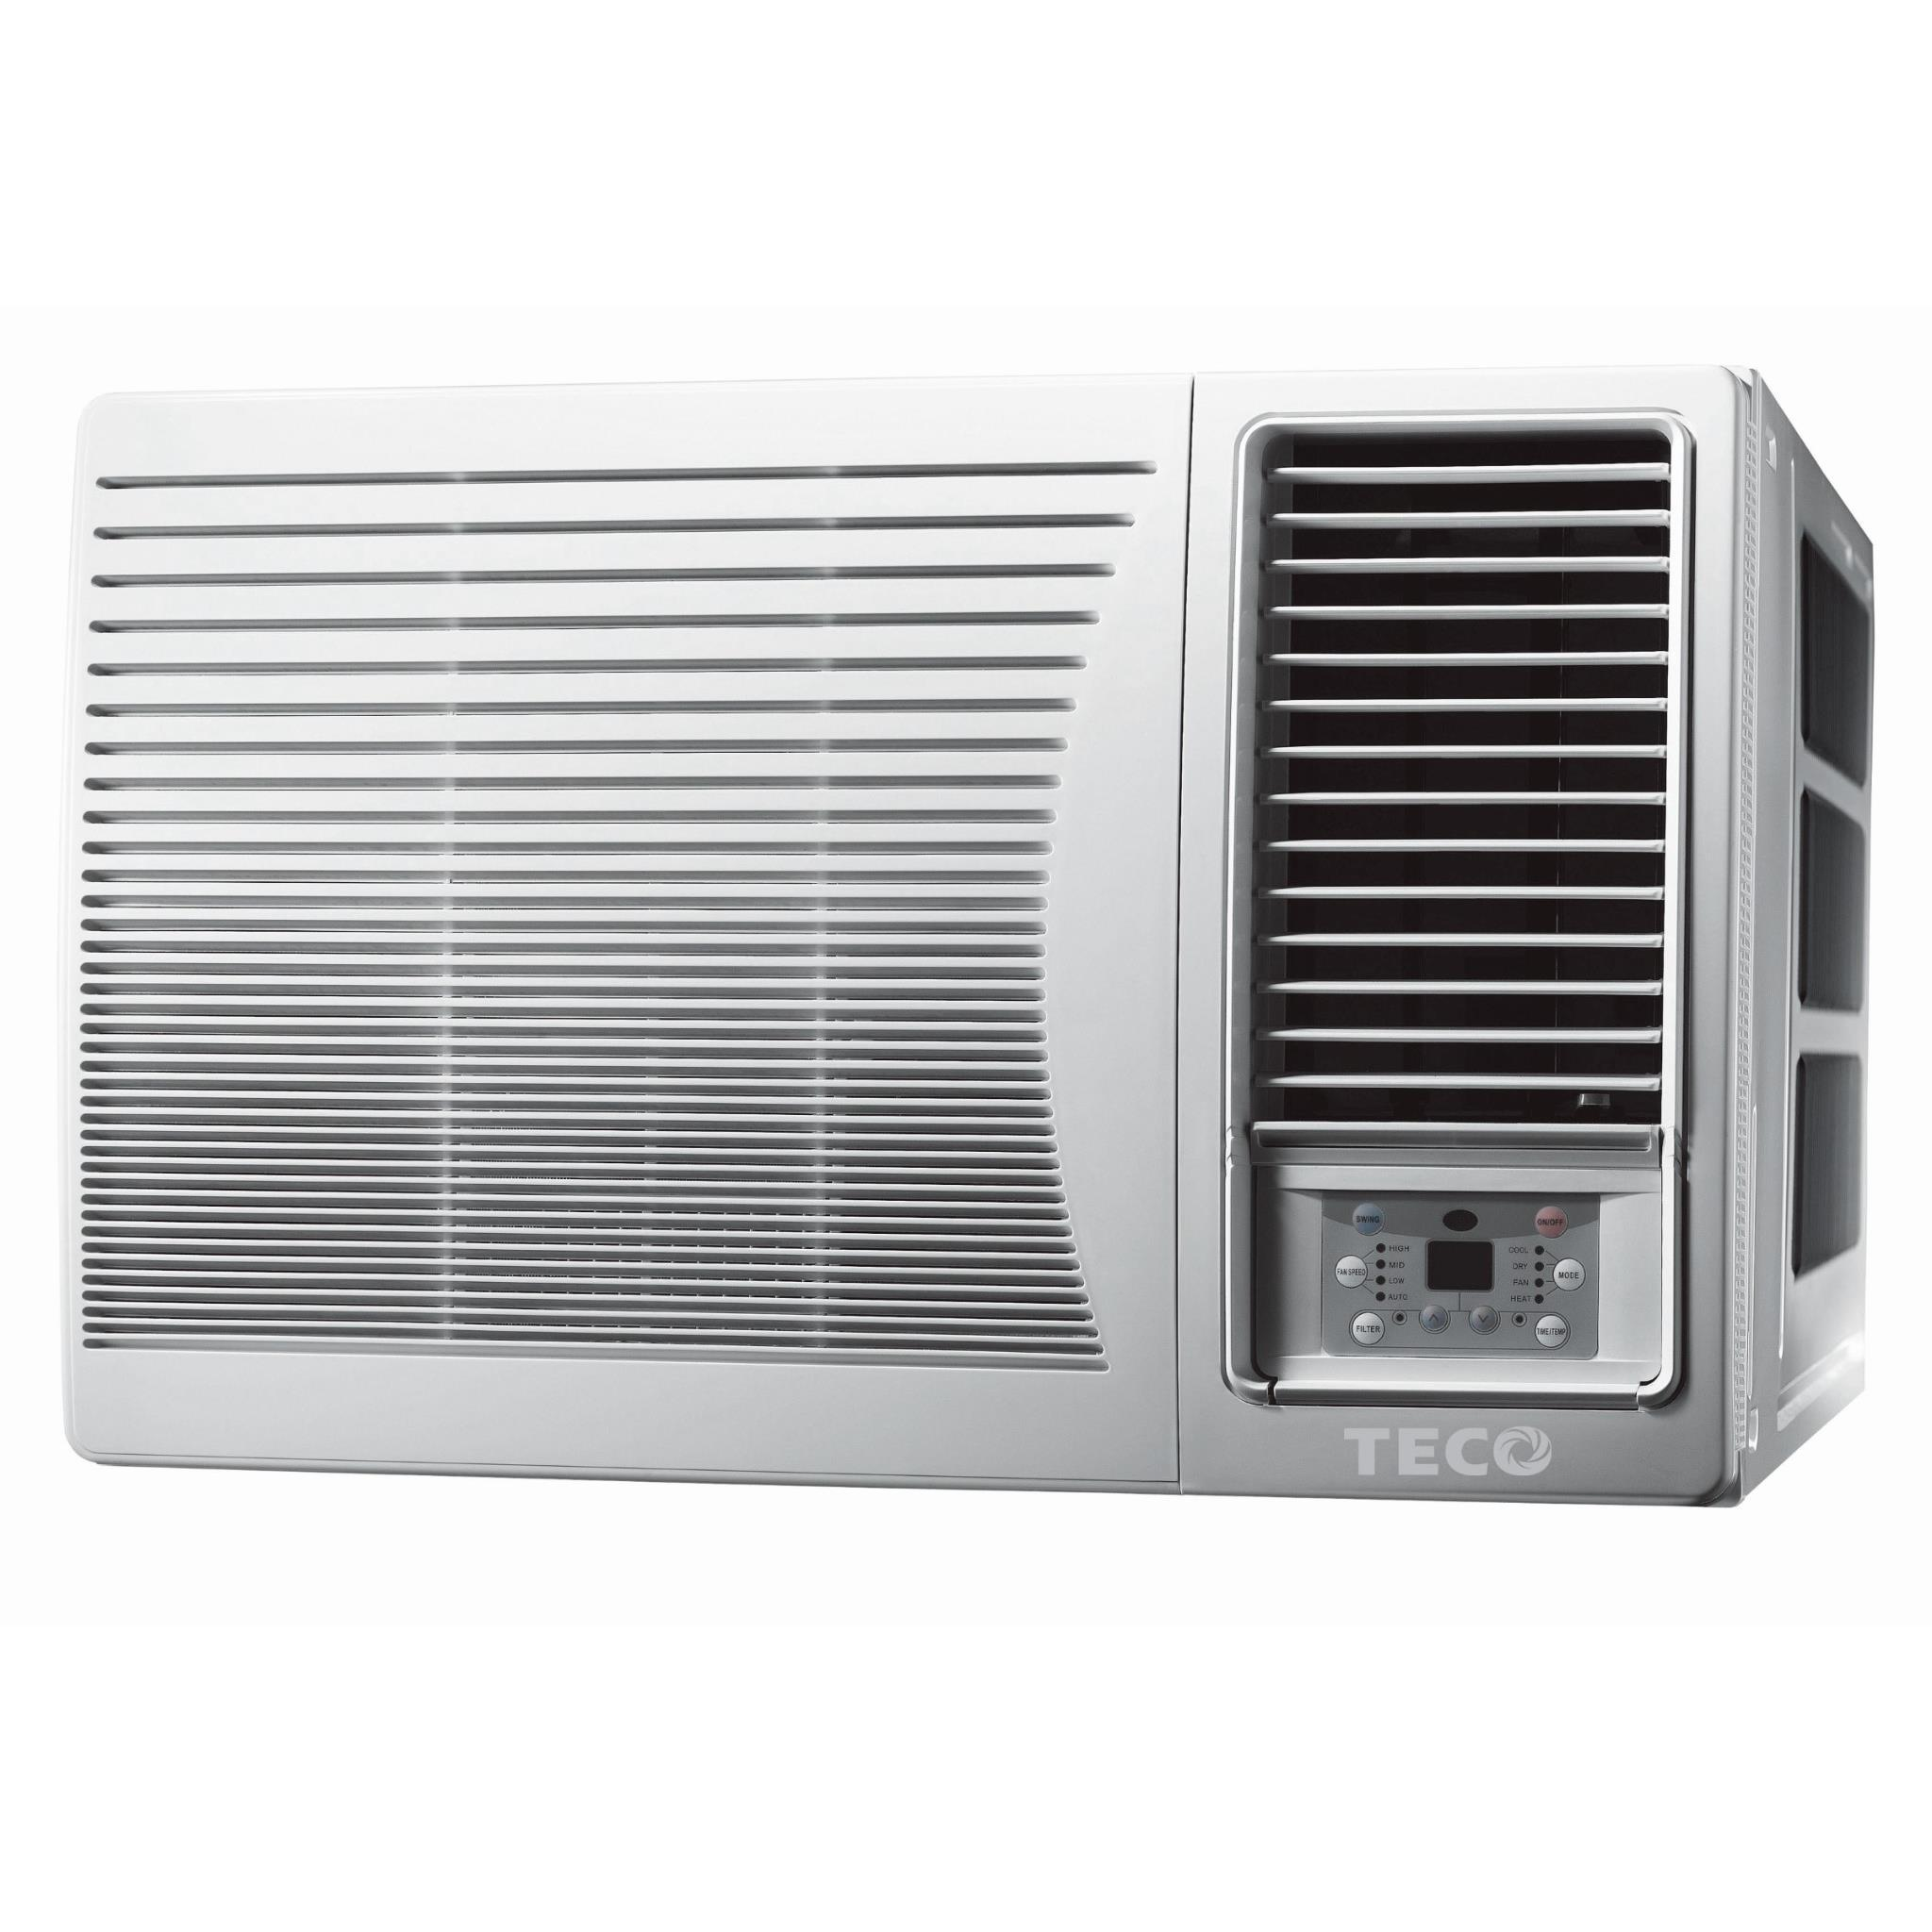 Teco 5.3kW Window/Wall Room Reverse Cycle Air Conditioner